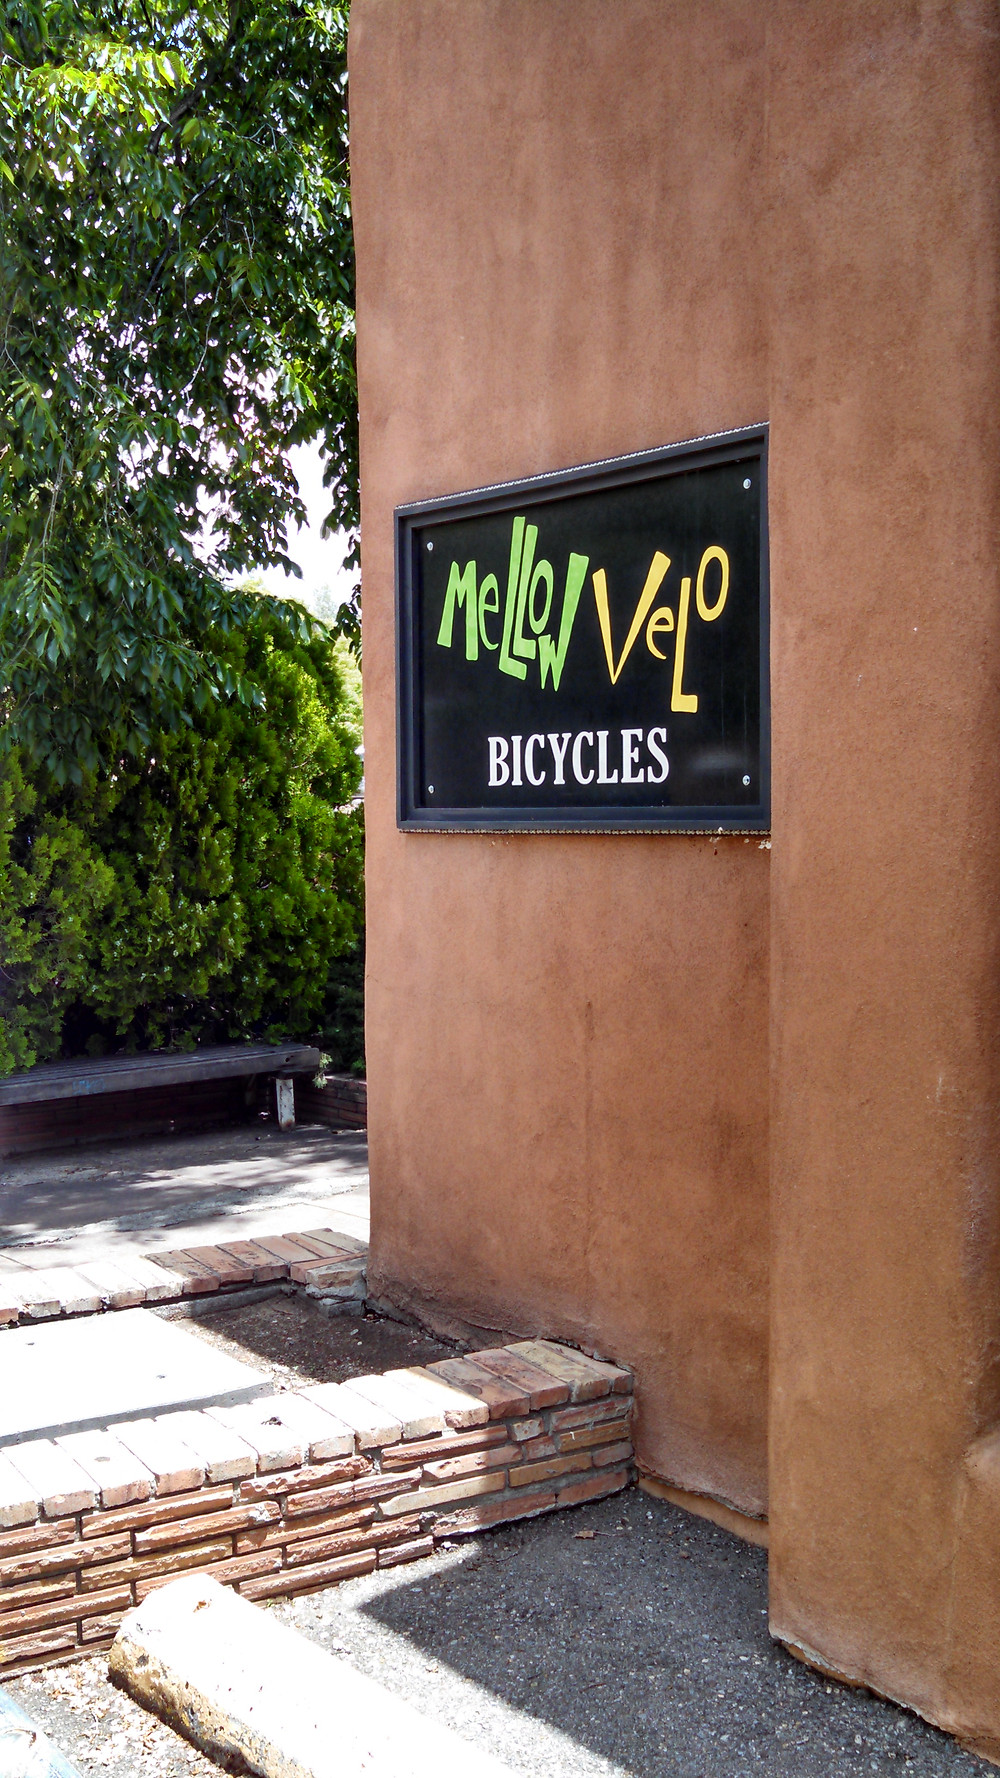 Santa Fe, Mellow Velo Bicycles